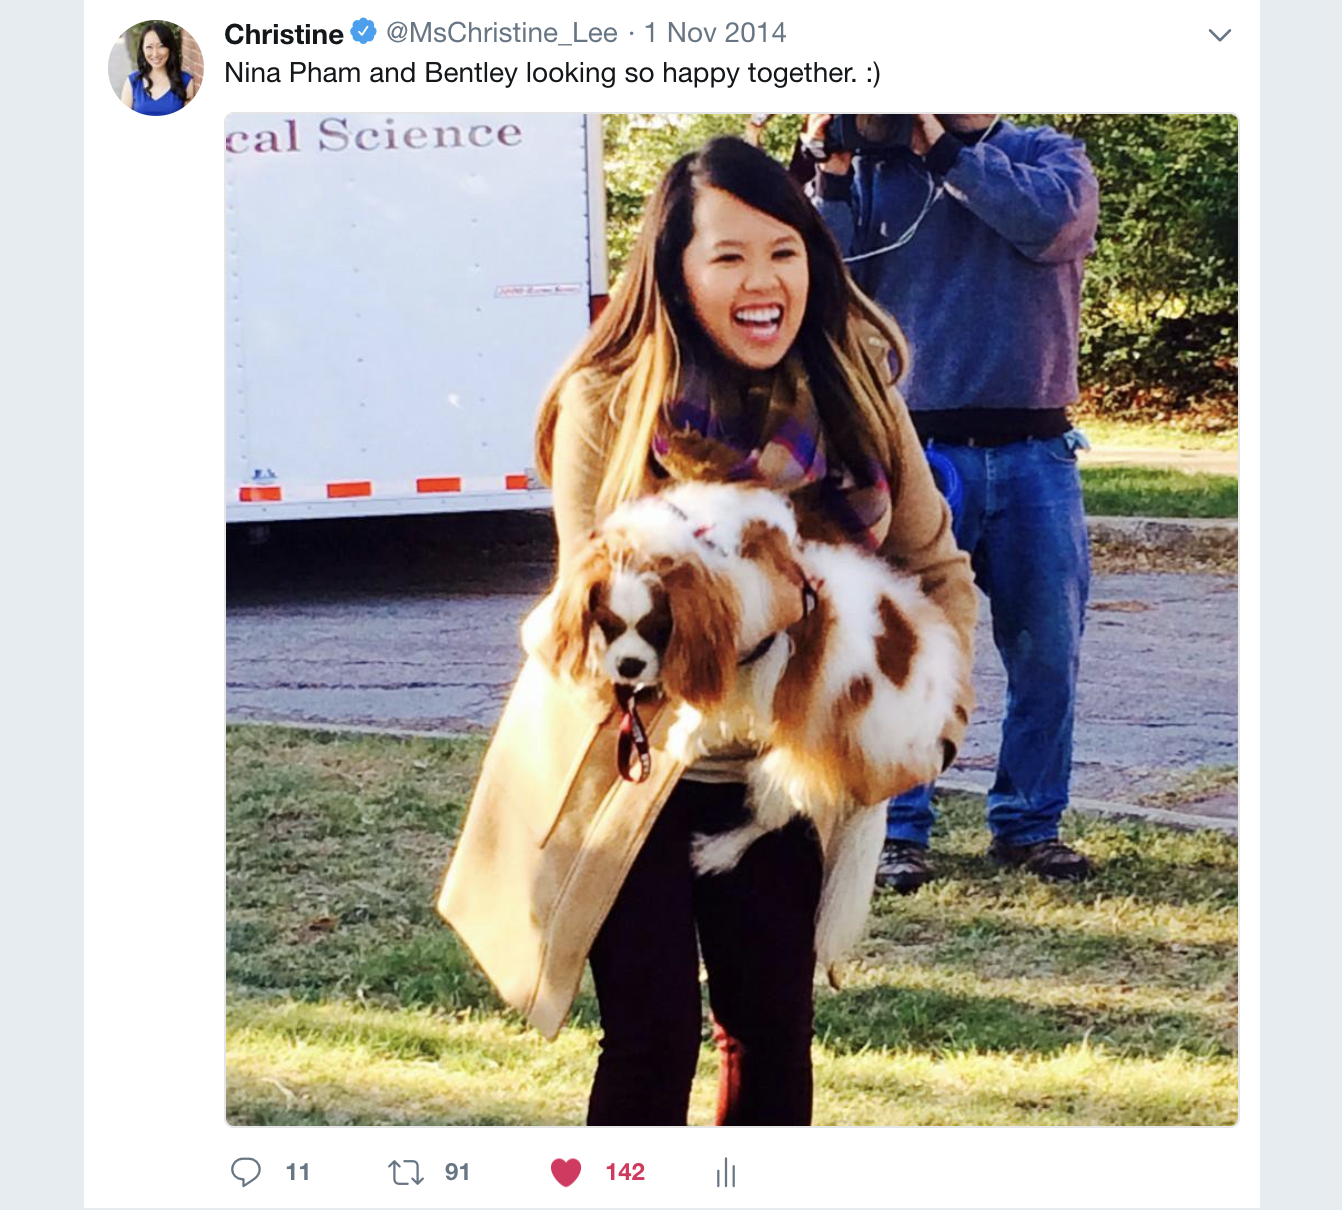 Christine Lee took this viral picture of Ebola Nurse Nina Pham reuniting with her dog Bentley